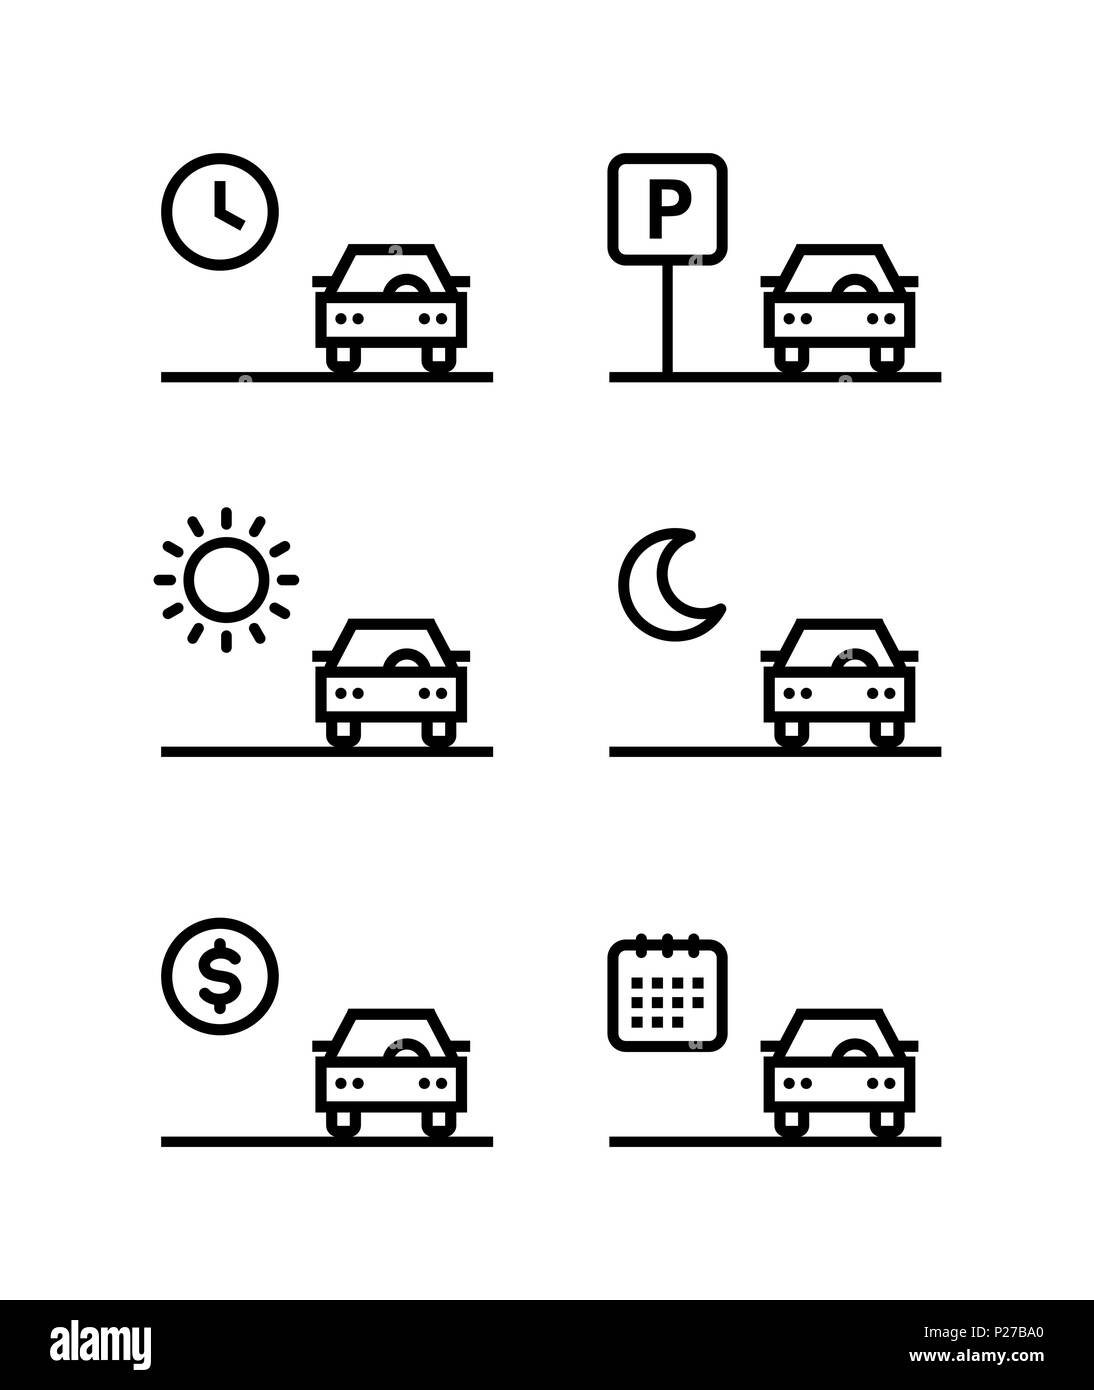 Car rent, parking, sell outline simple vector black icons on white background - Stock Image